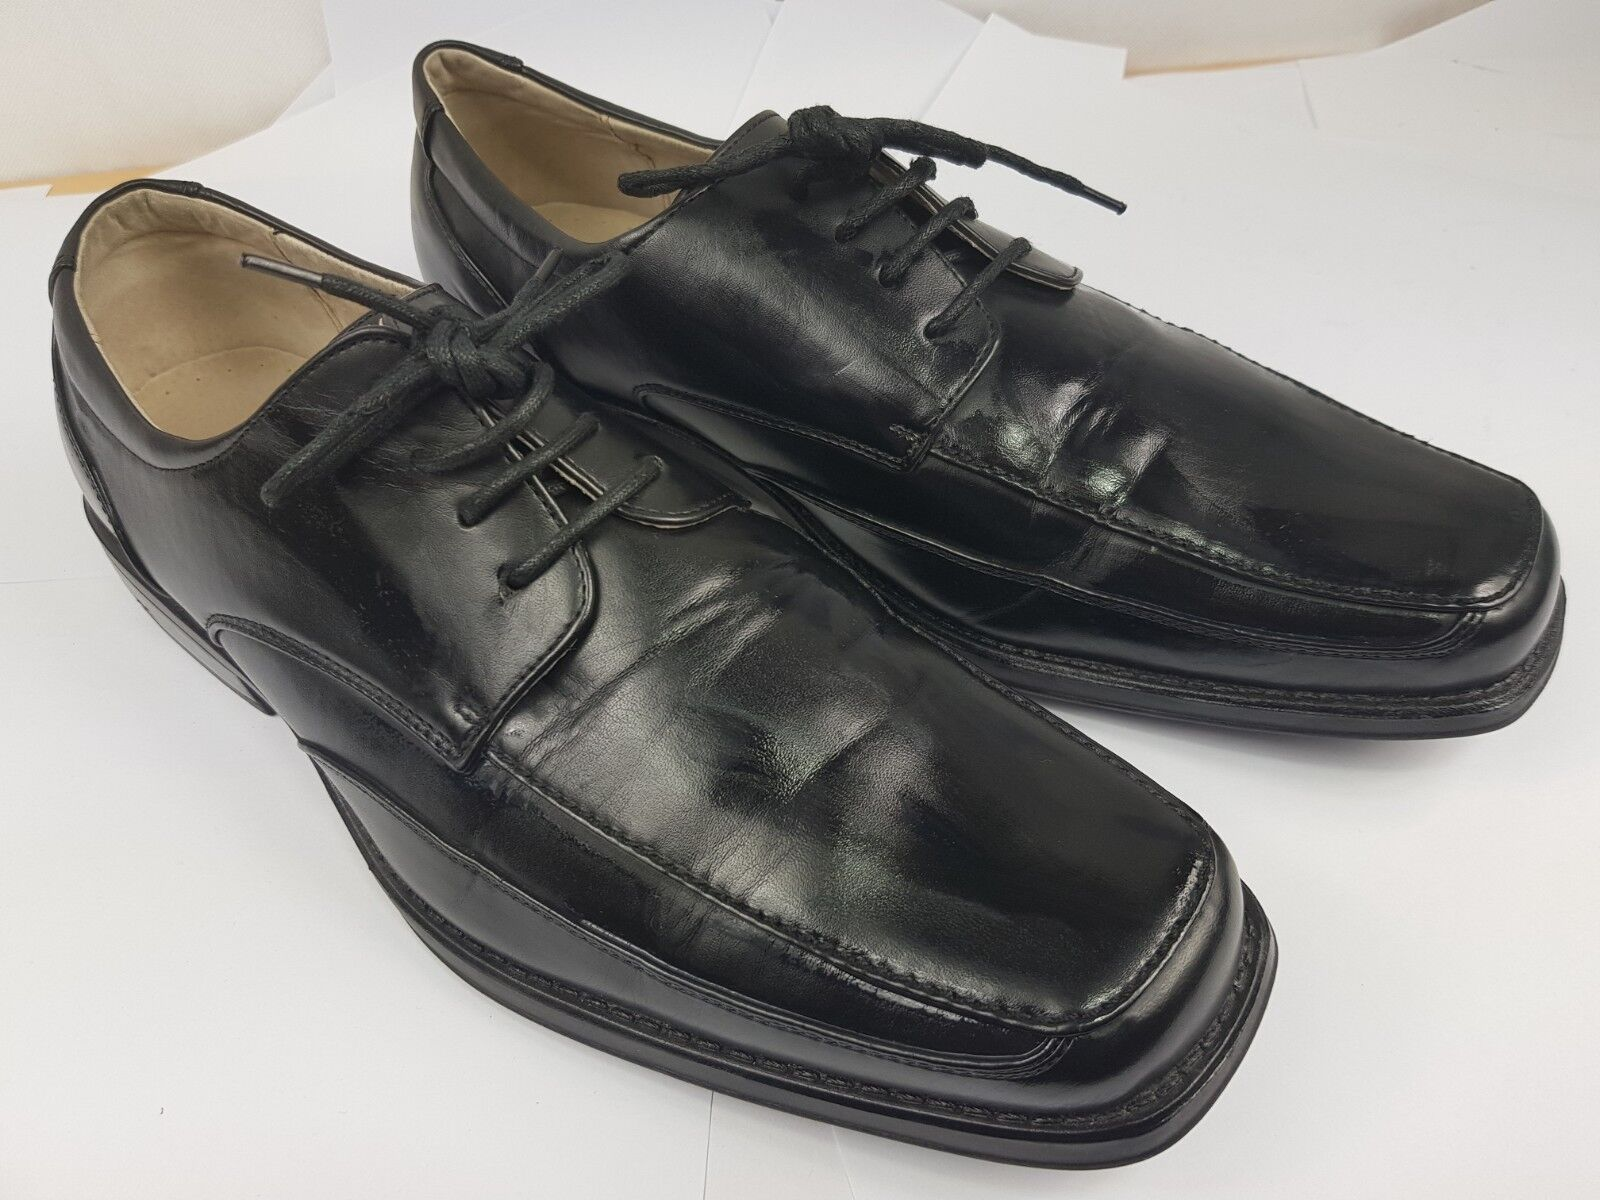 M&S Essential Black Lace Up Quality Leather Work shoes UK 9 EU 43 - VGC